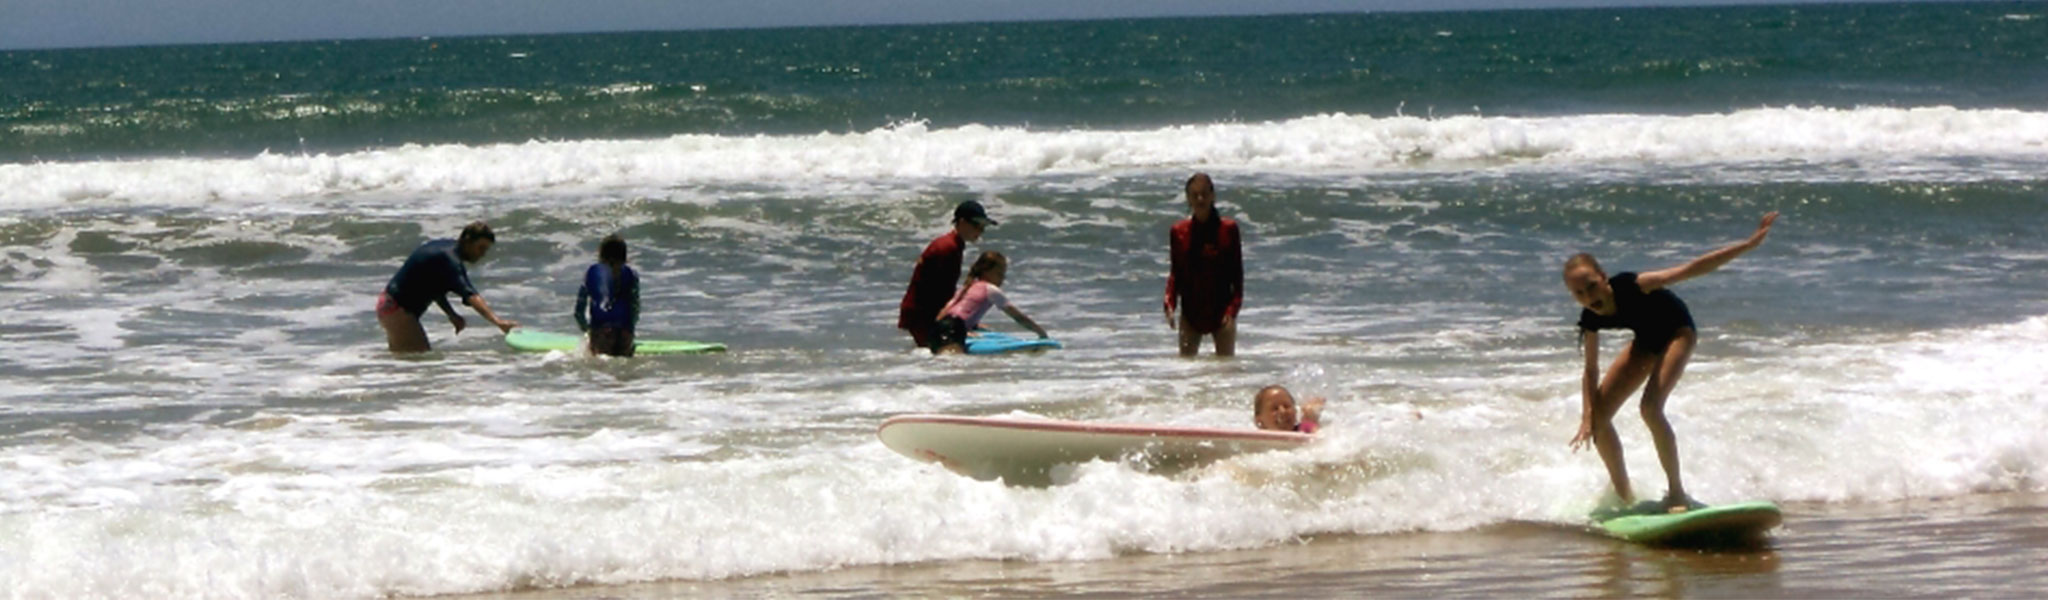 Mapleton State School students surfing at the beach